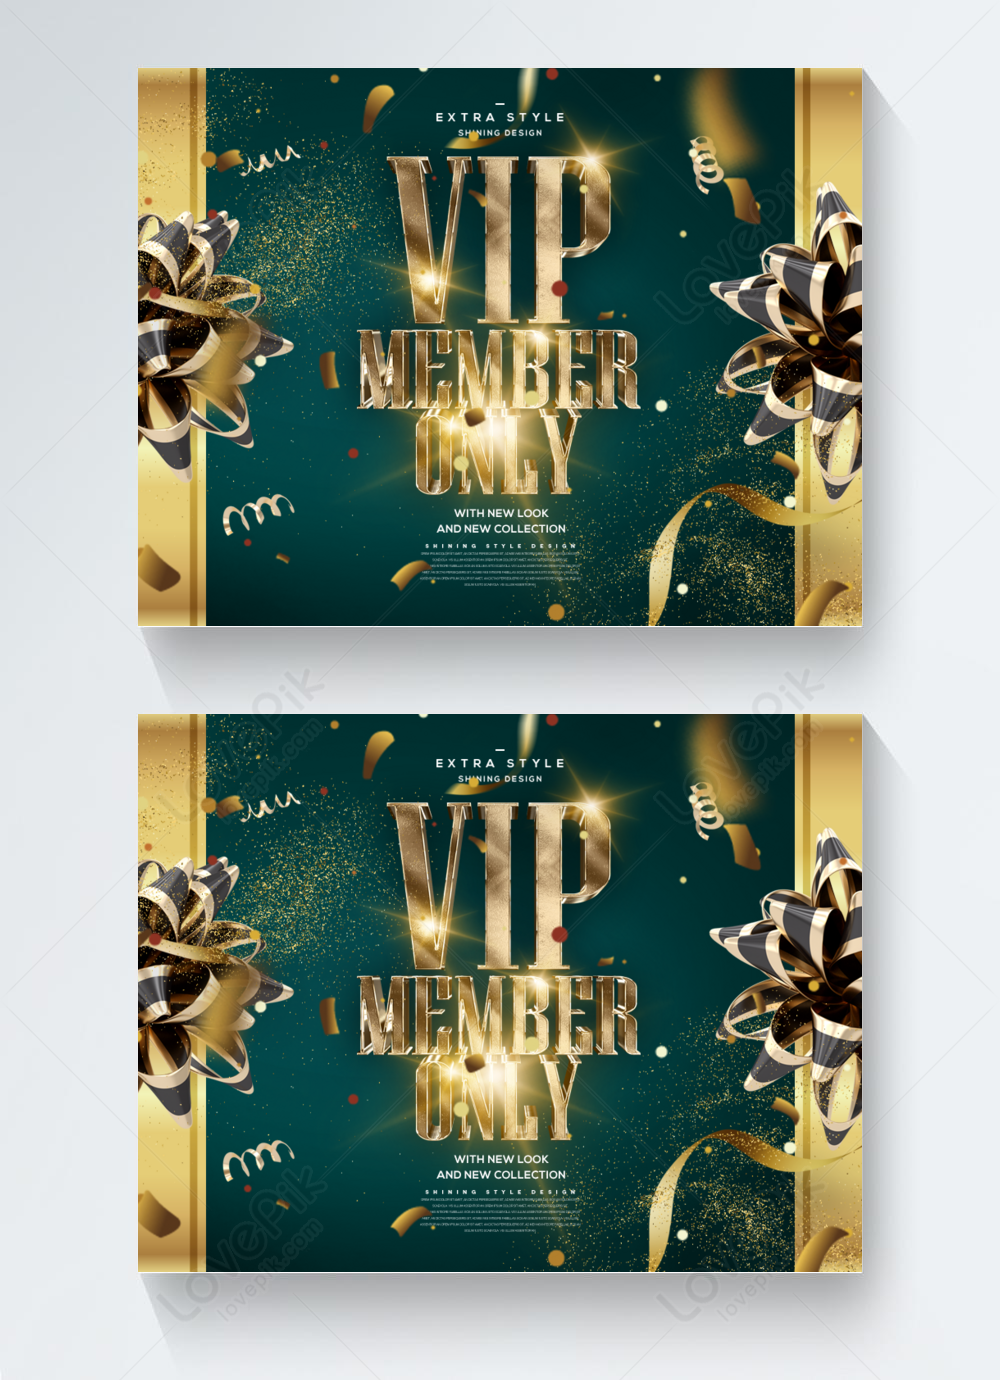 High-end luxury golden effect vip member themed business invitation card  template image_picture free download 465436259_lovepik.com